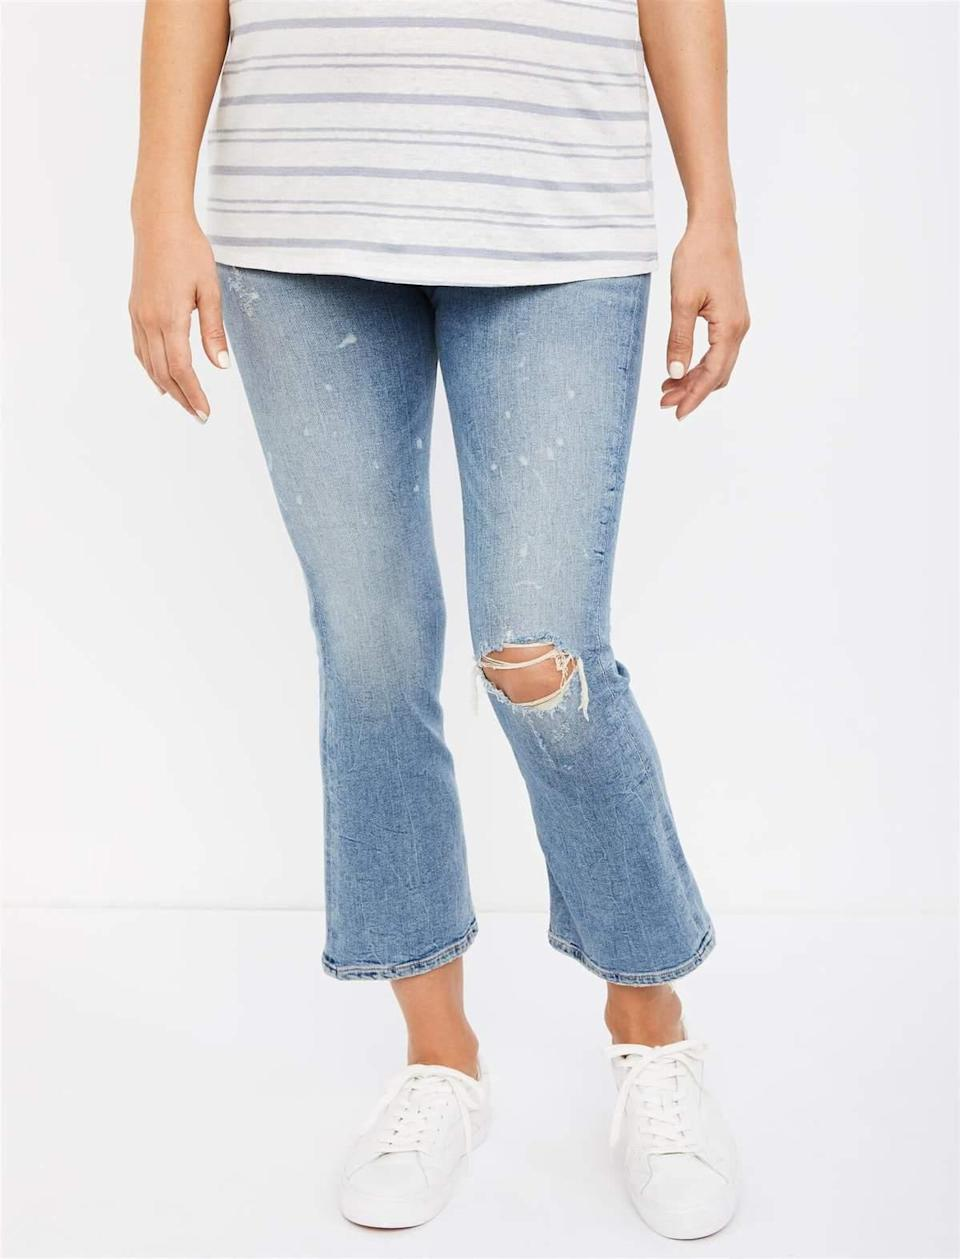 """$189, A Pea in the Pod. <a href=""""https://www.apeainthepod.com/collections/citizens-of-humanity/products/citizens-of-humanity-side-panel-midrise-demy-cropped-flare-maternity-jeans-006-23686-000-001"""" rel=""""nofollow noopener"""" target=""""_blank"""" data-ylk=""""slk:Get it now!"""" class=""""link rapid-noclick-resp"""">Get it now!</a>"""